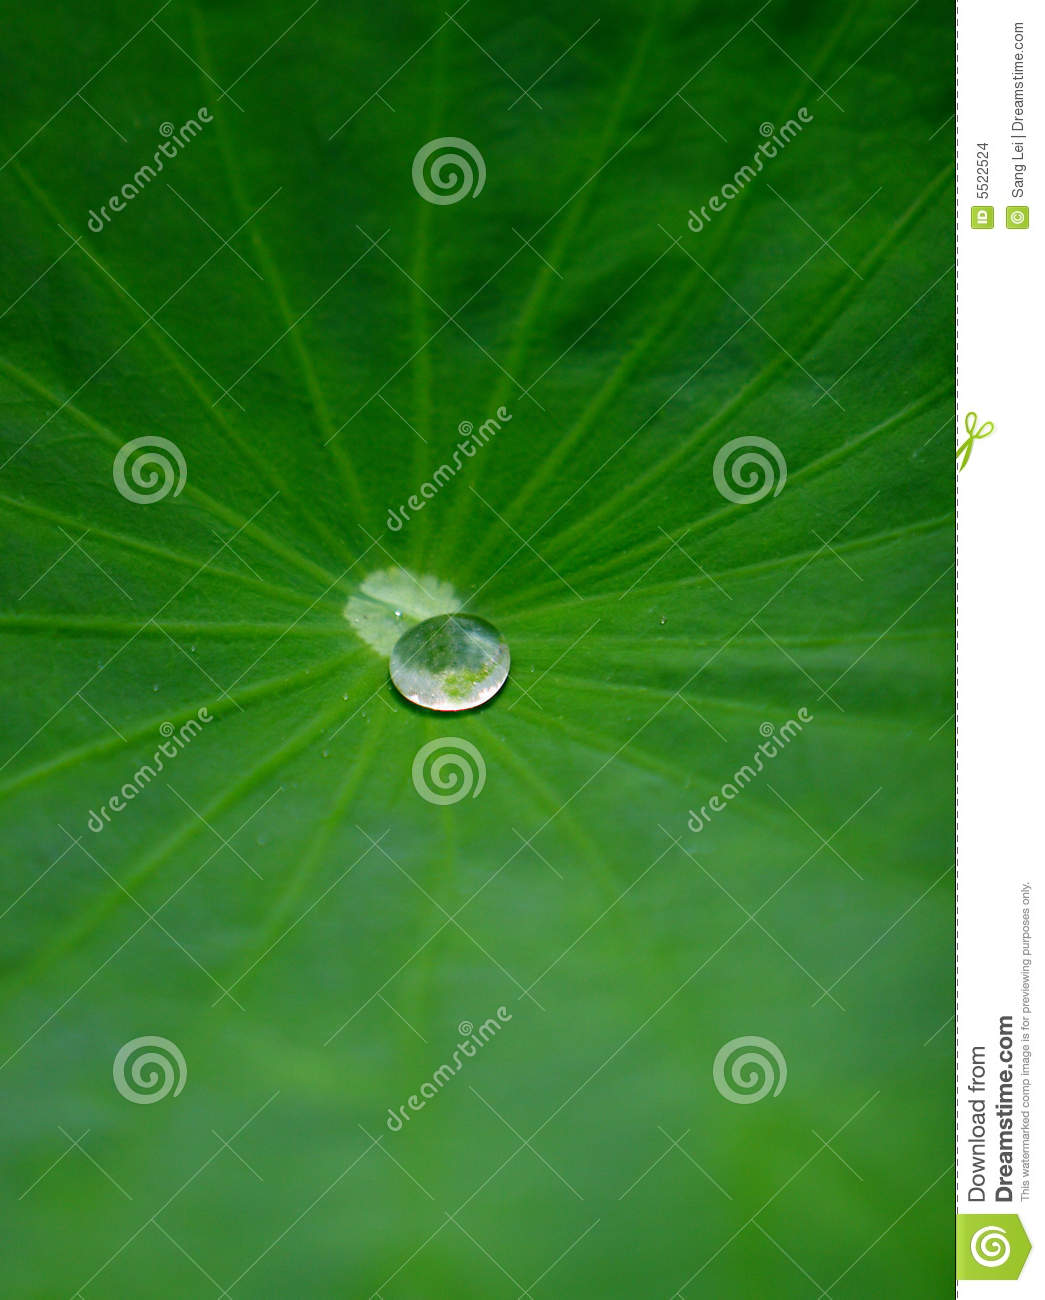 Waterdrop on lotus leaf